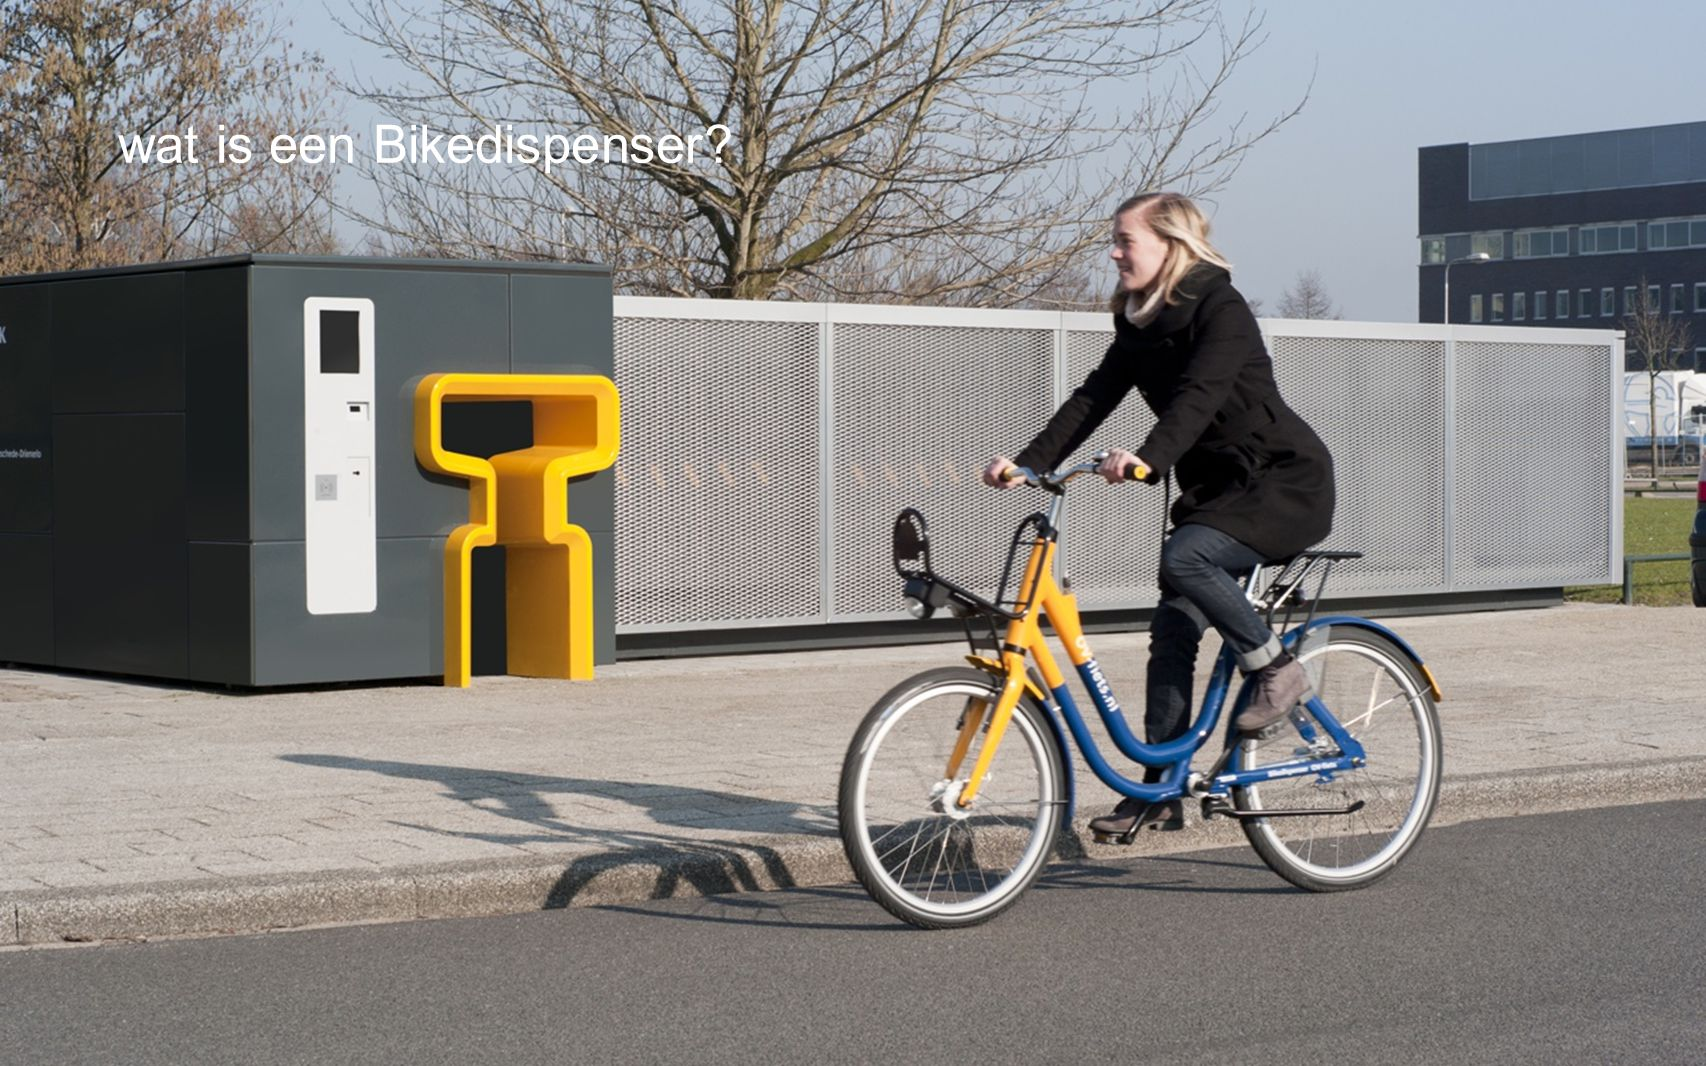 wat is een Bikedispenser